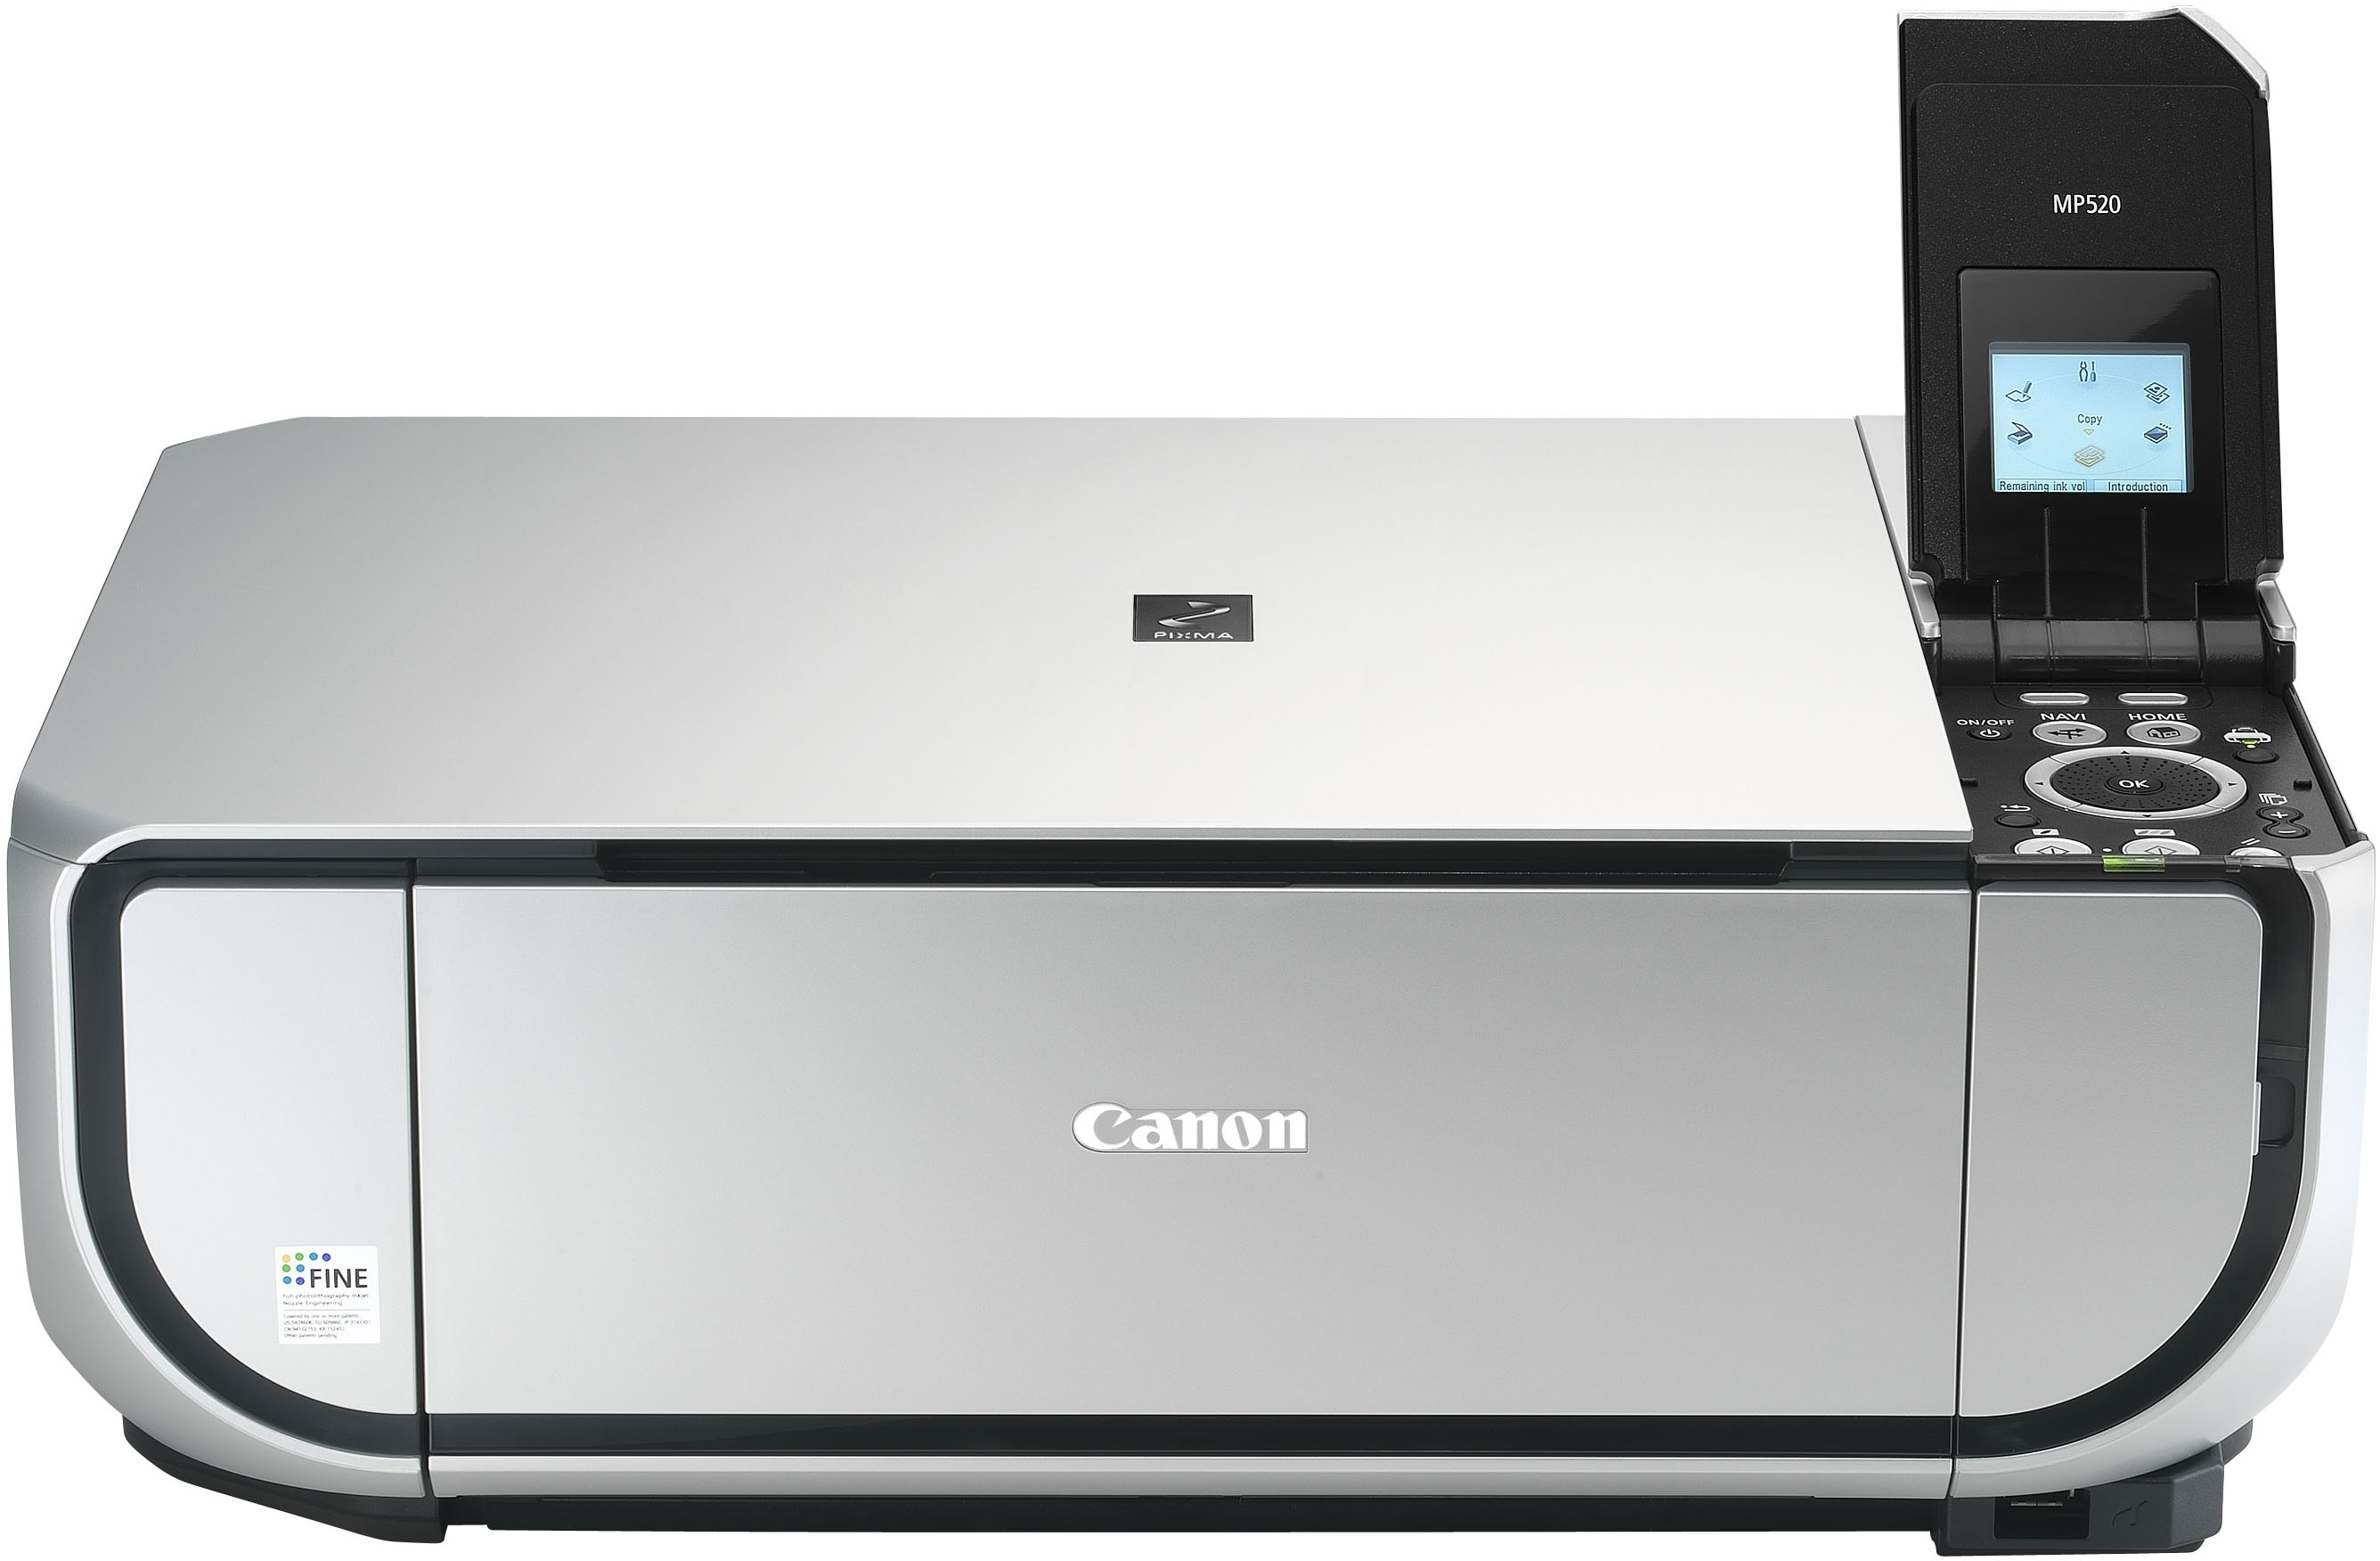 DRIVERS UPDATE: CANON MP520 SCANNER